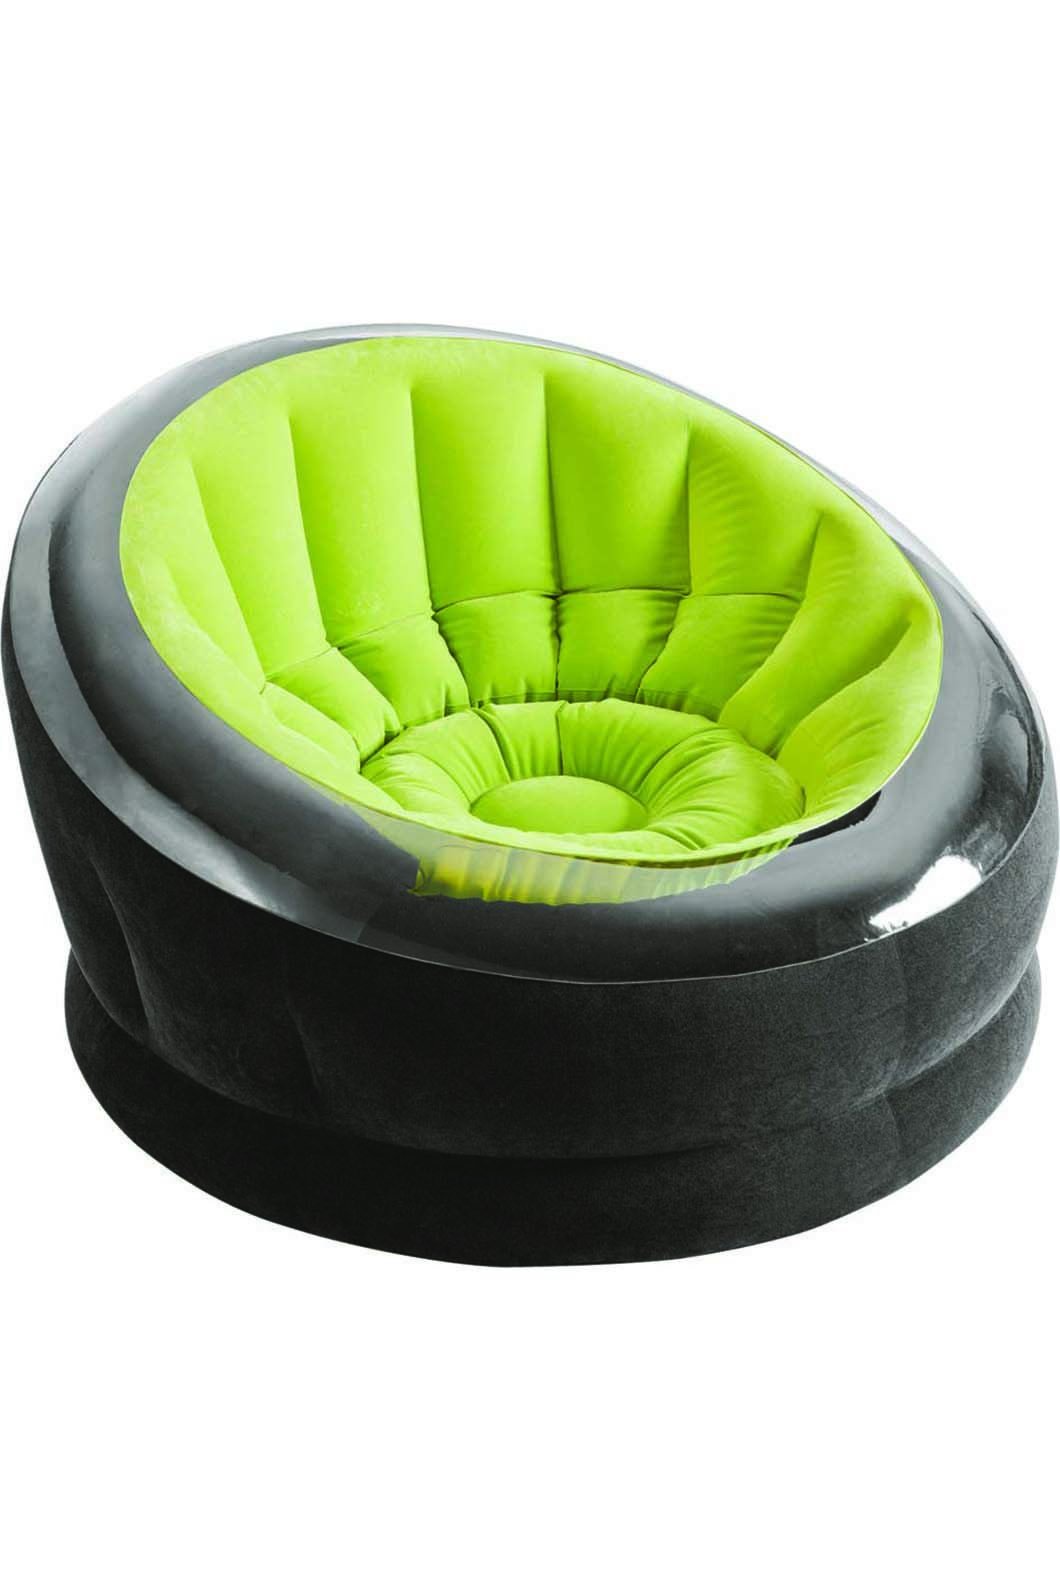 Intex Inflatable Empire Chair, None, hi-res